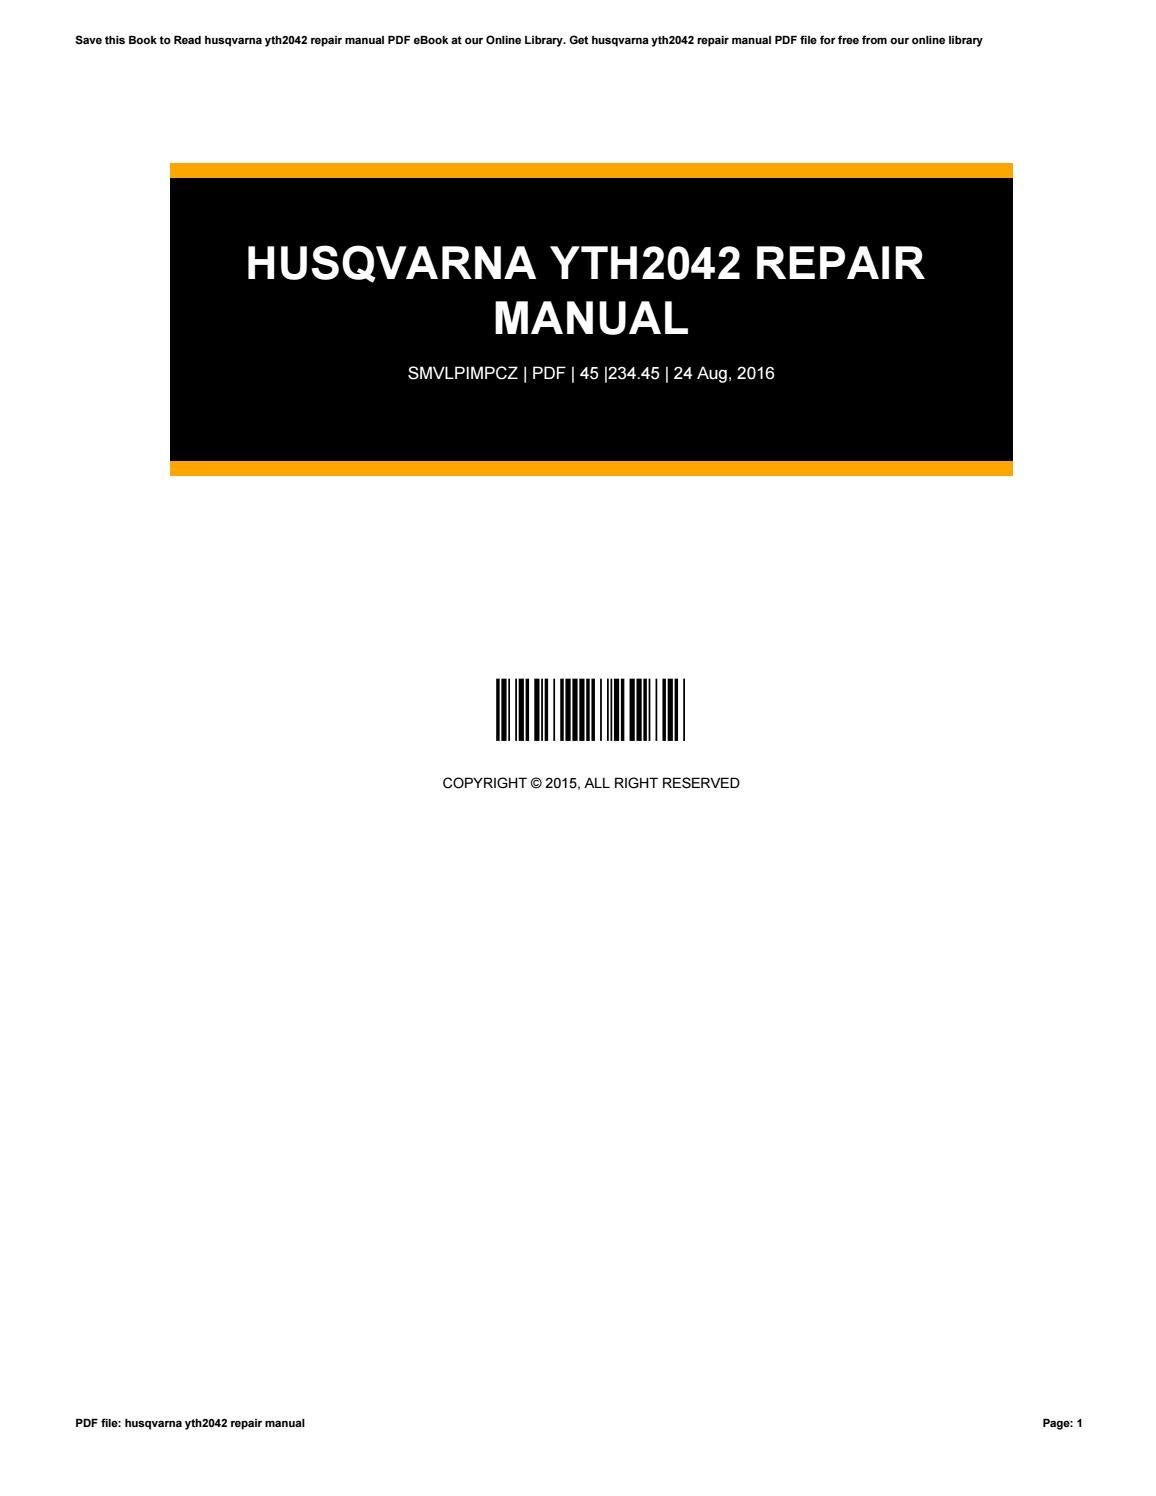 husqvarna wr250 service repair manual pdf 06 ebook